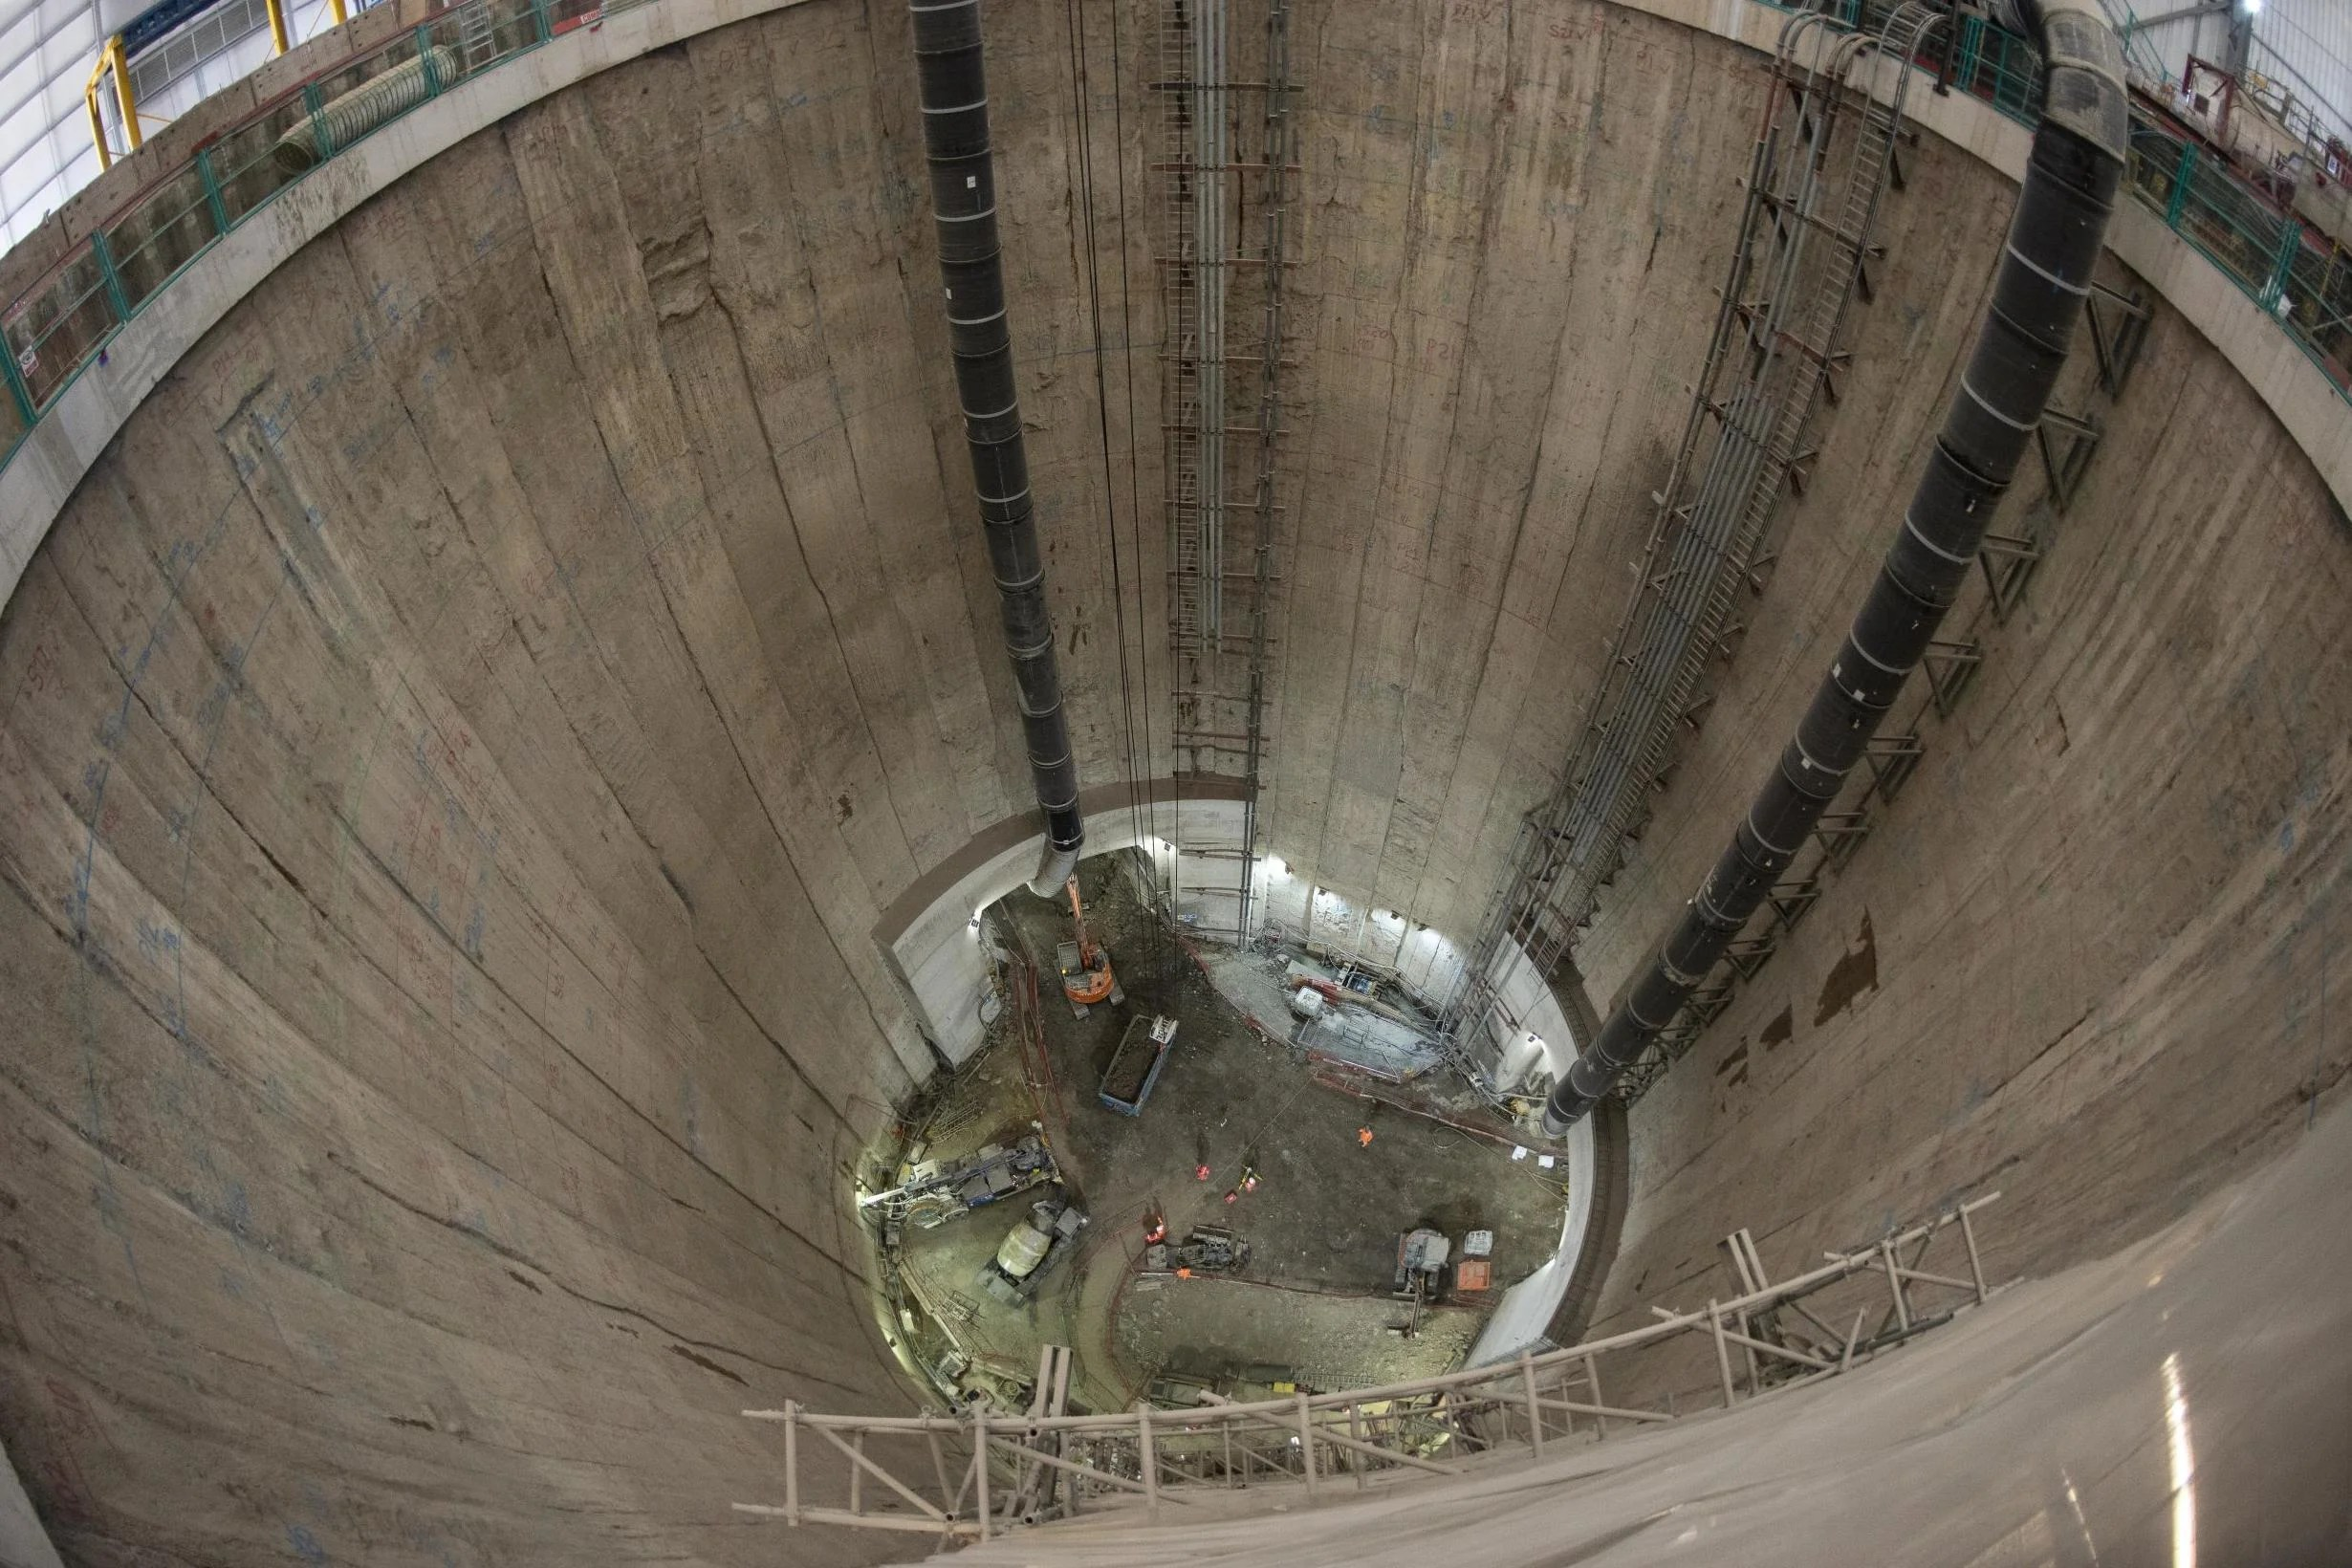 Crater the size of St Pauls kicks off Londons 42 billion supersewer project  London